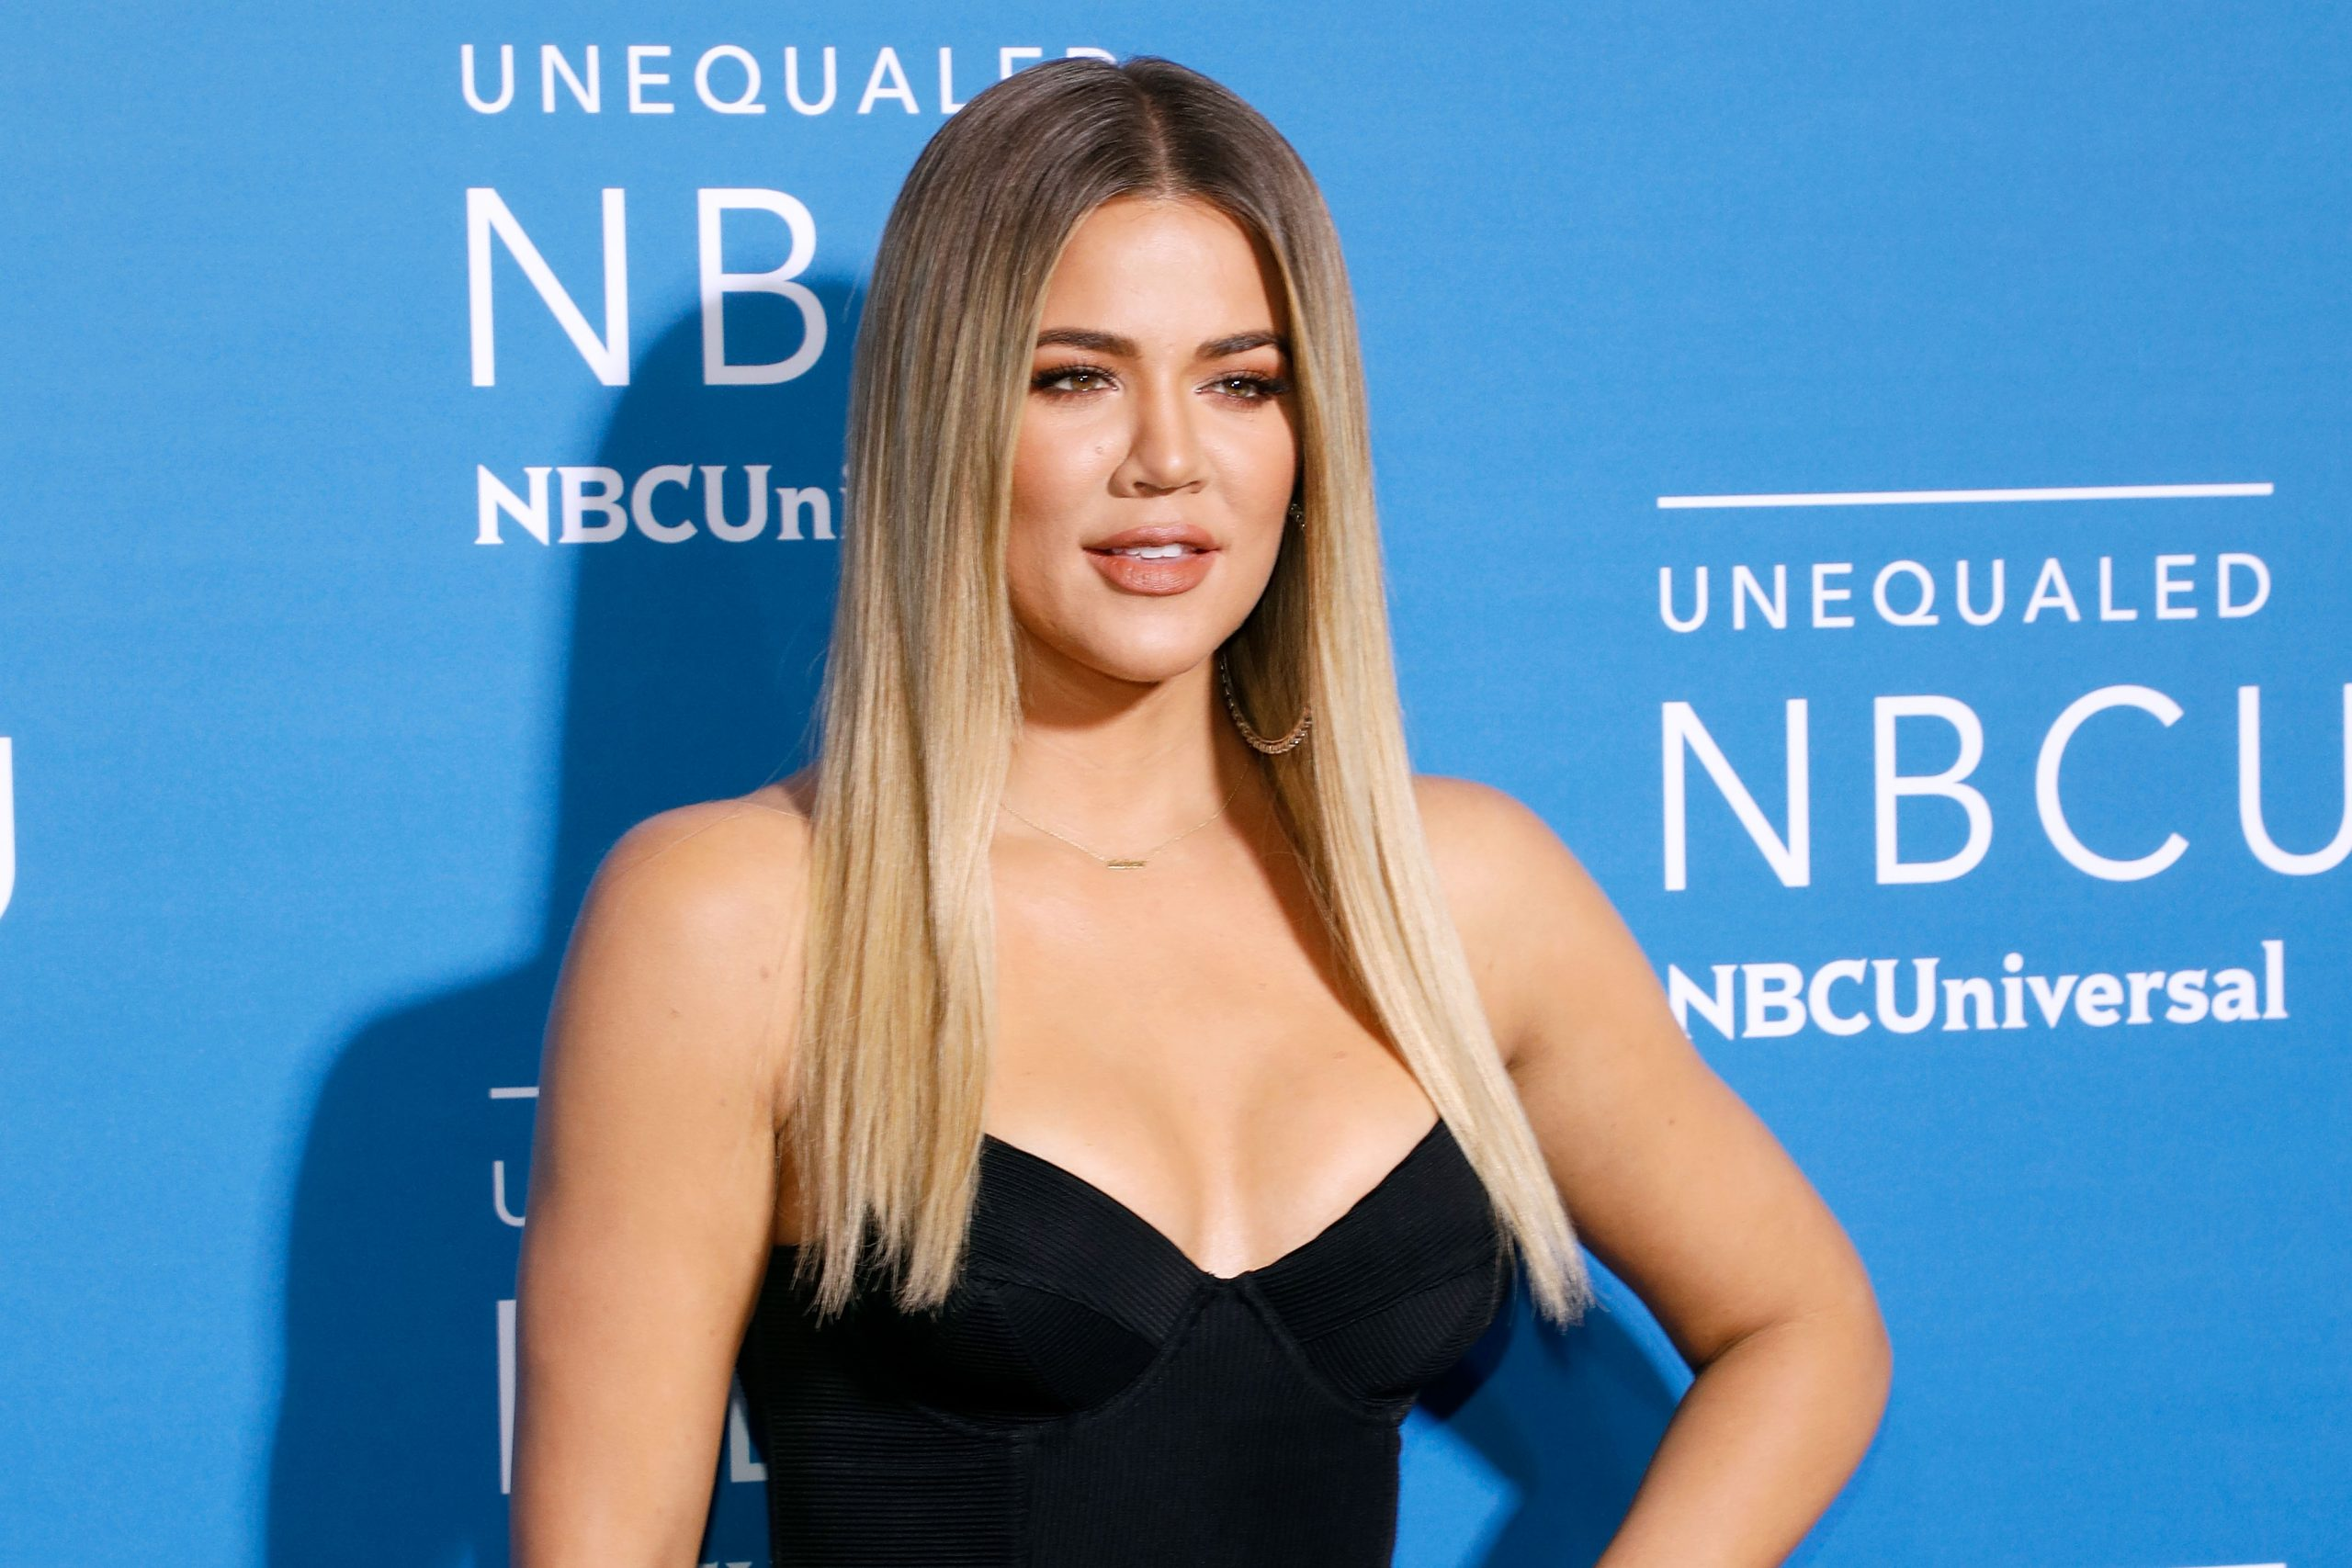 Khloe Kardashian Publicly Called Out By Designer Christian Cowan - Find Out Why